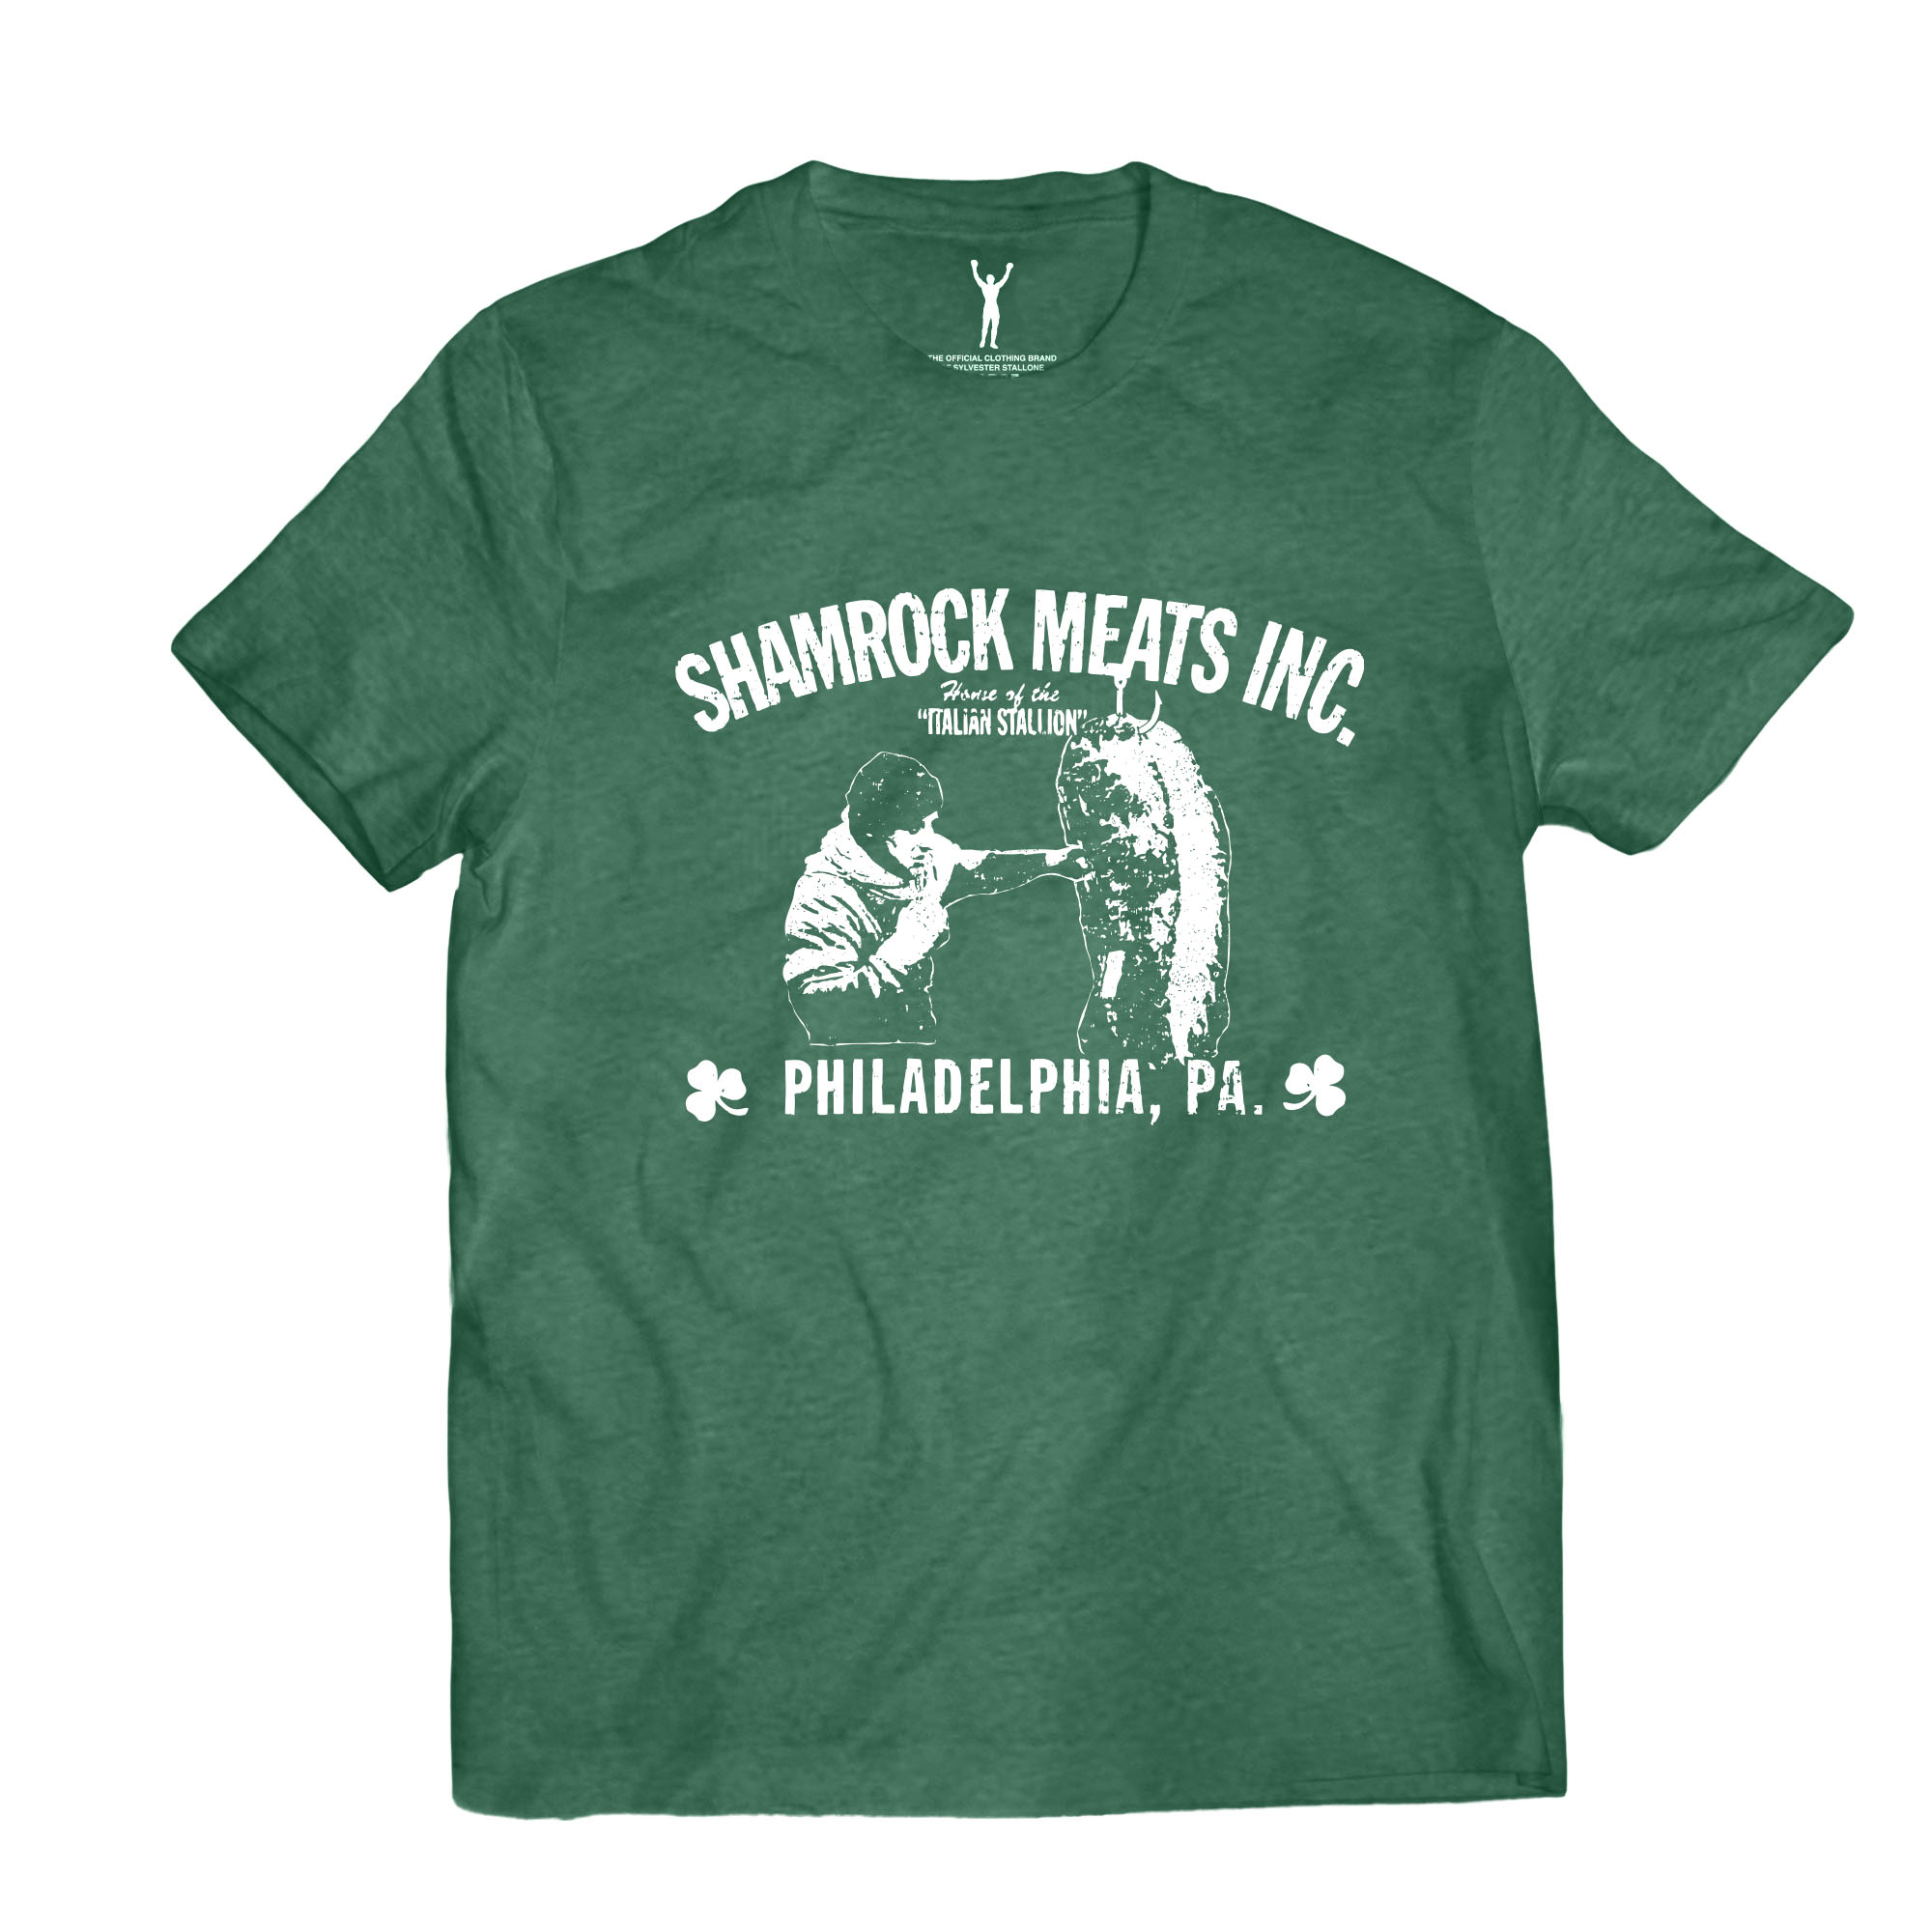 Shamrock Meats Green Tee